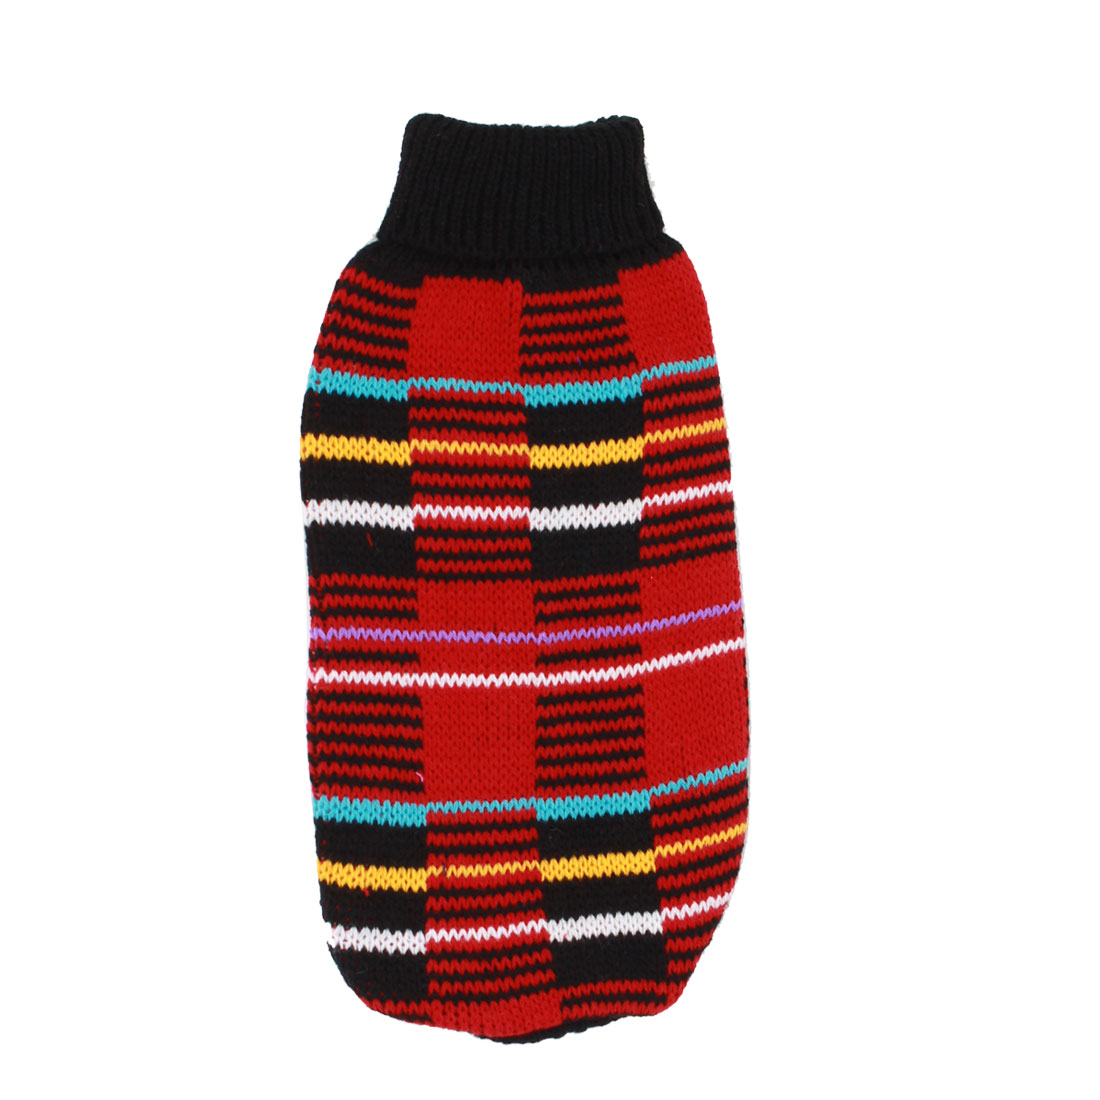 Pet Dog Yorkie Ribbed Cuff Knitwear Turtleneck Apparel Coat Sweater Red Black Size XS